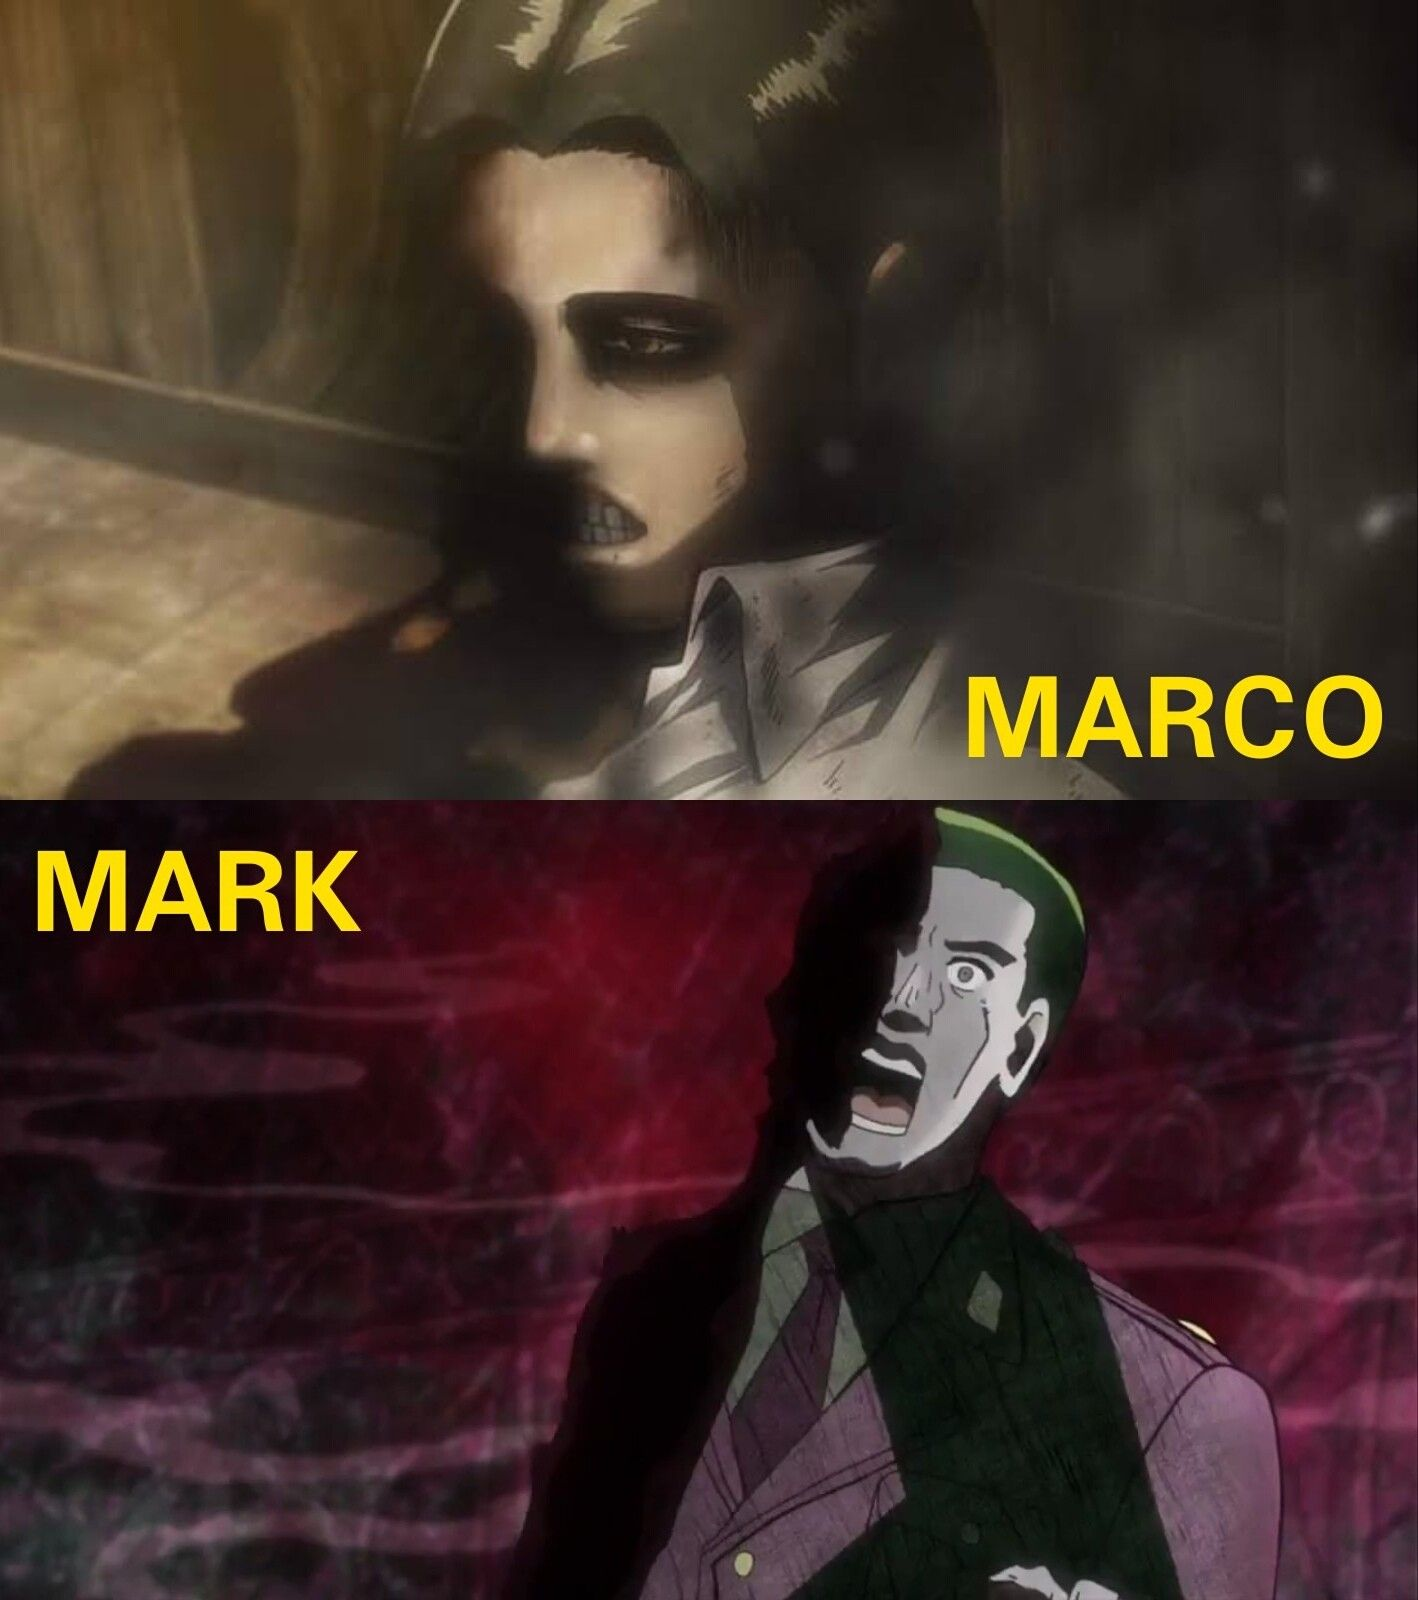 Marco (Attack on Titan) and Mark (JoJo's Bizarre Adventure